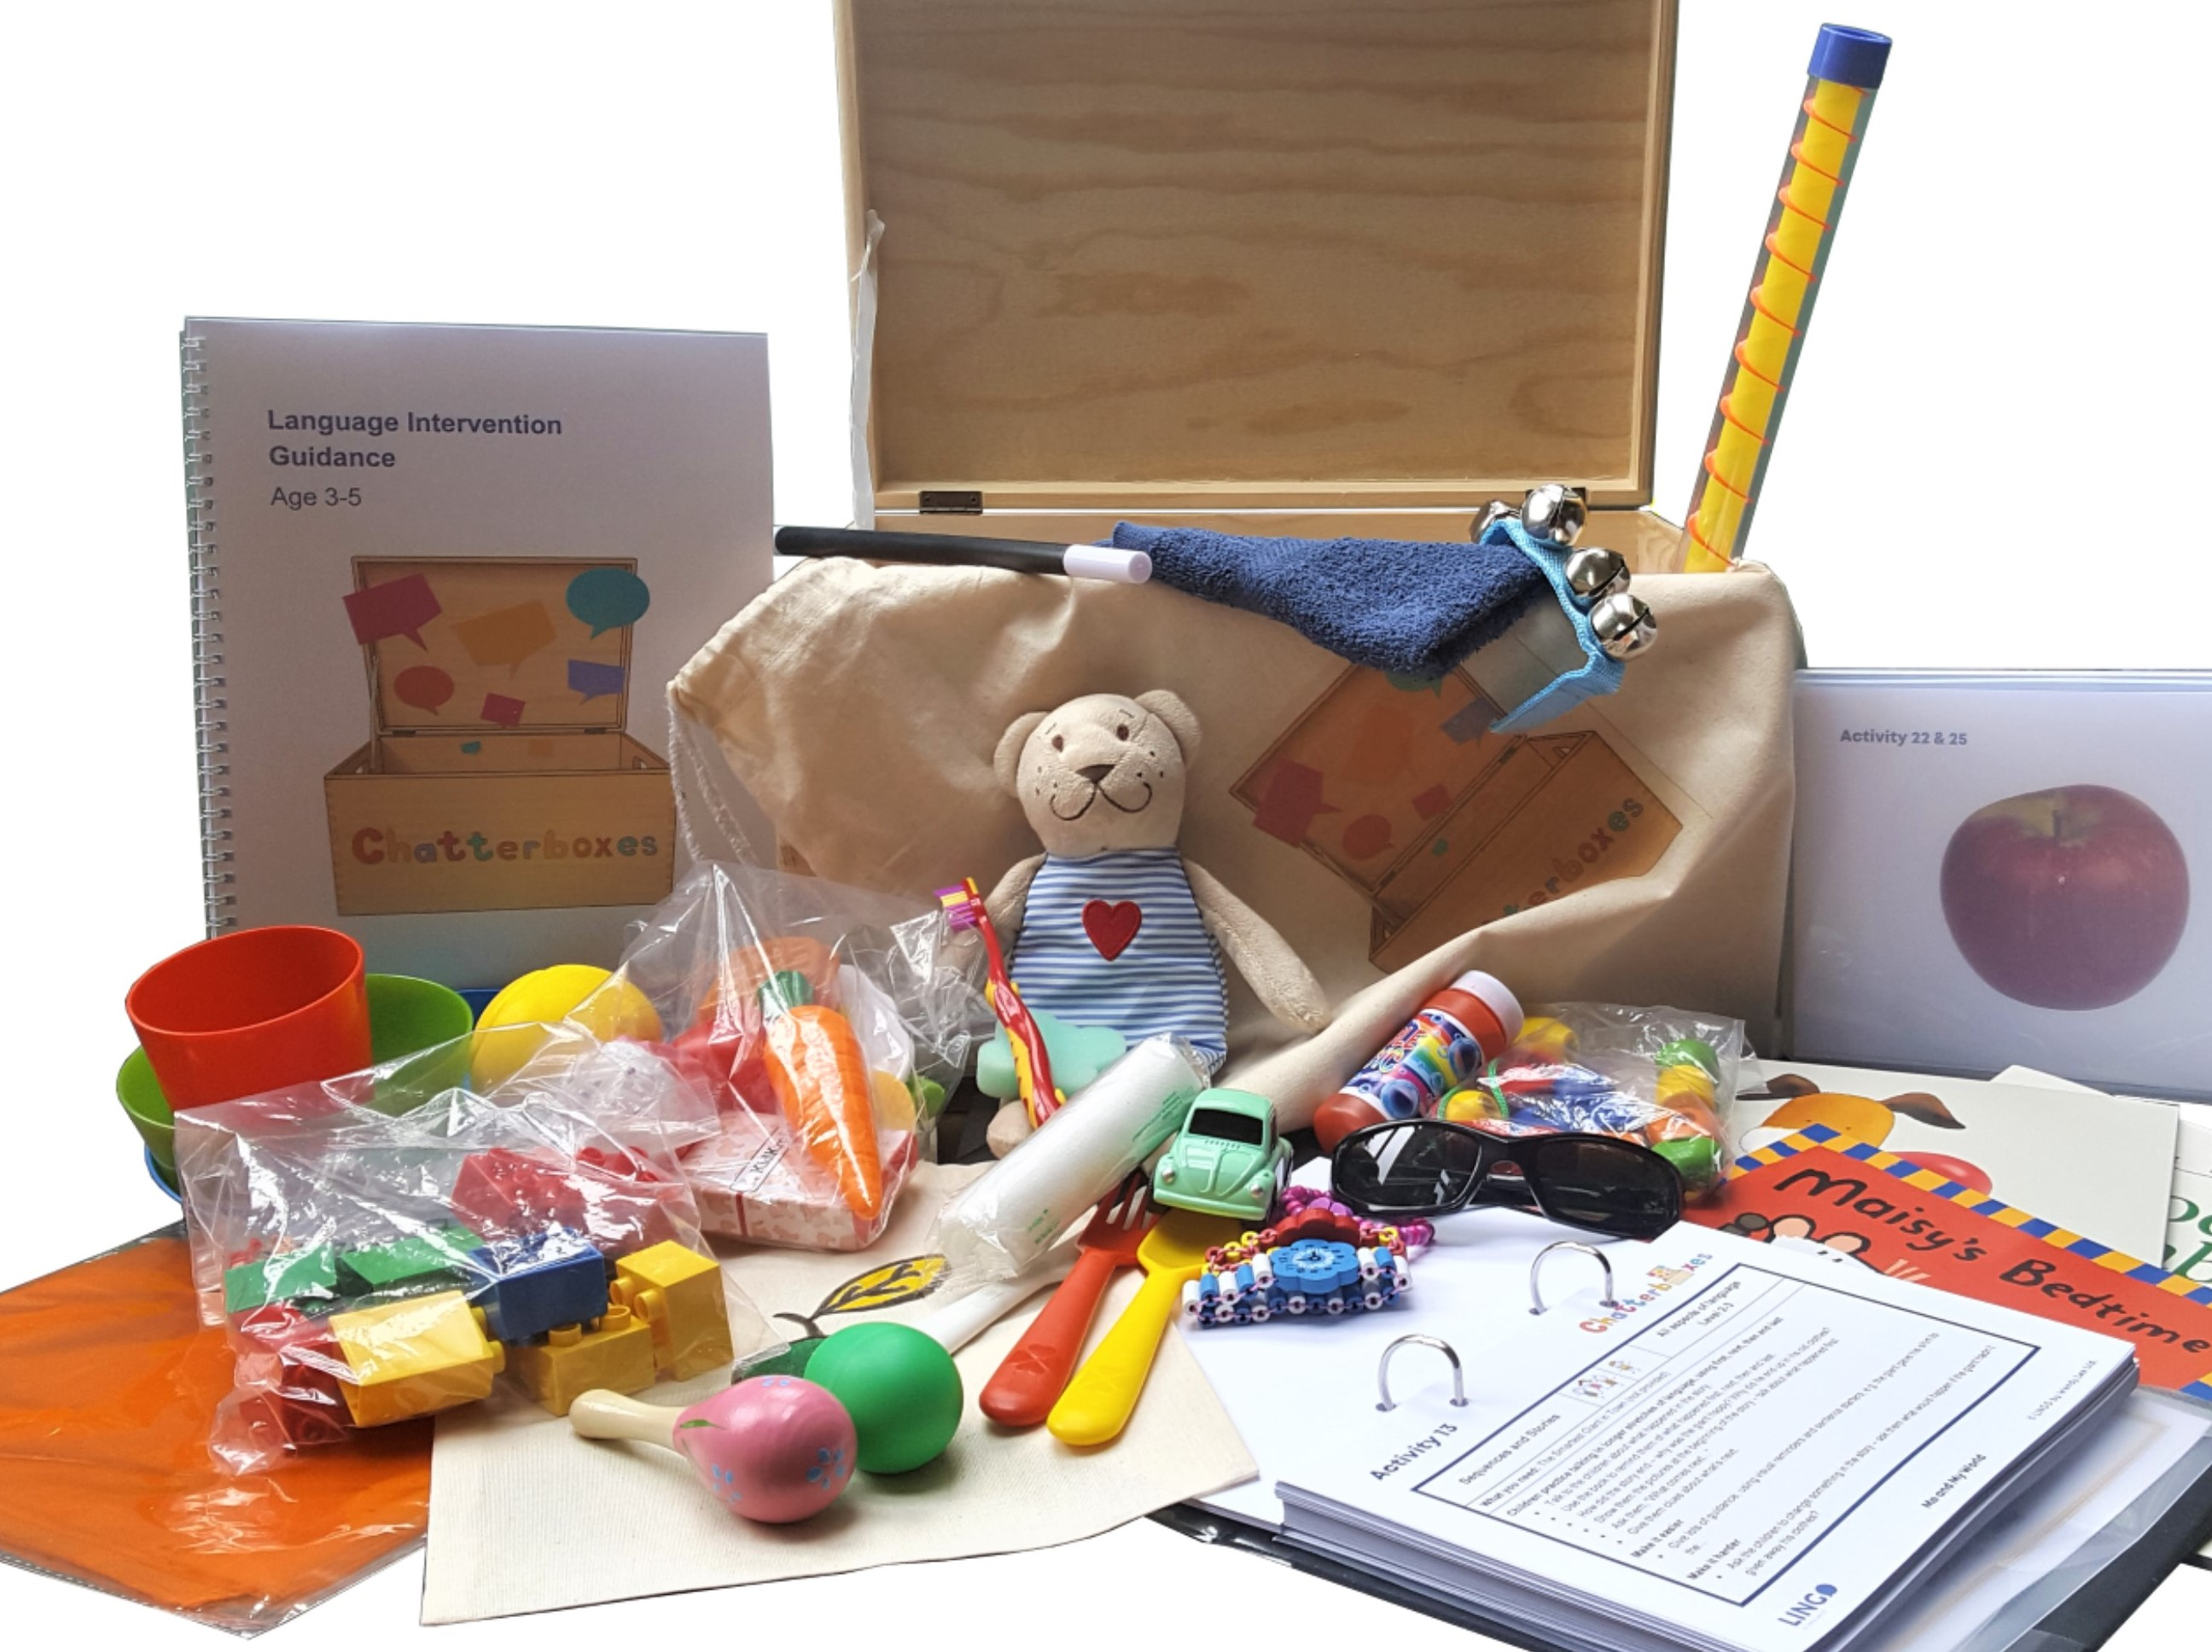 Chatterboxes Toys , Games and Activities